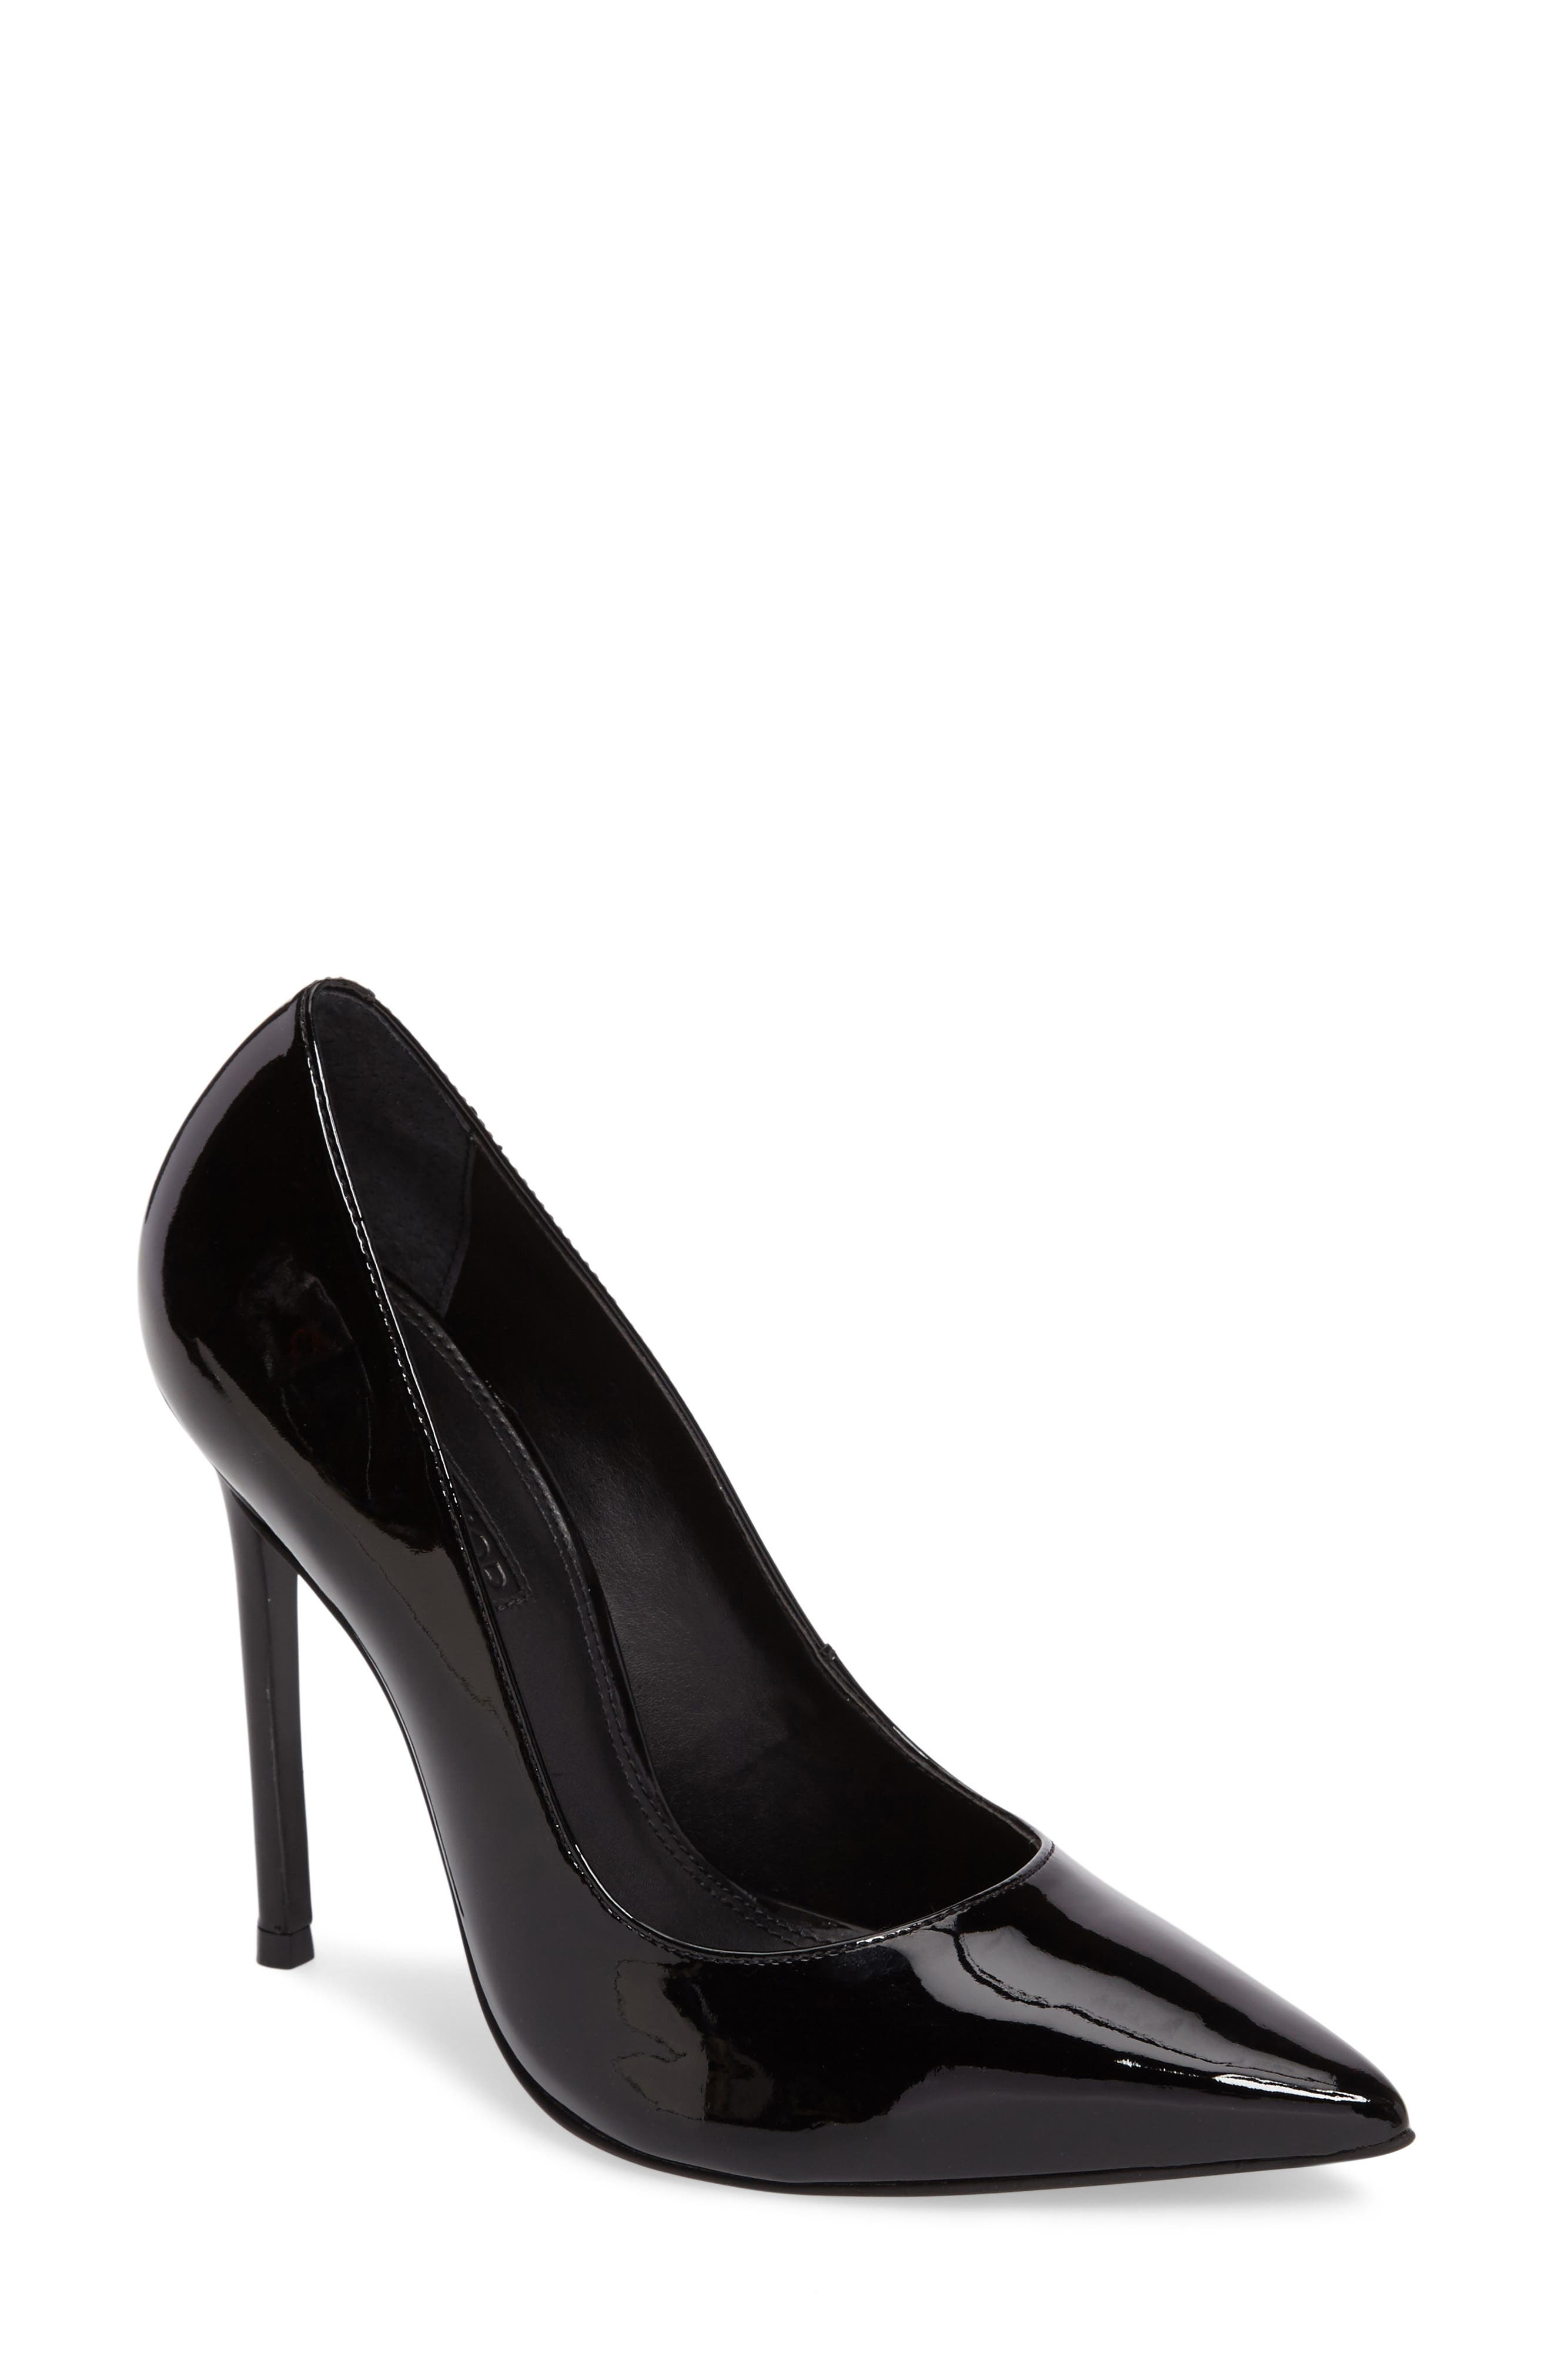 Alternate Image 1 Selected - Topshop Gamble Pointy Toe Pump (Women)